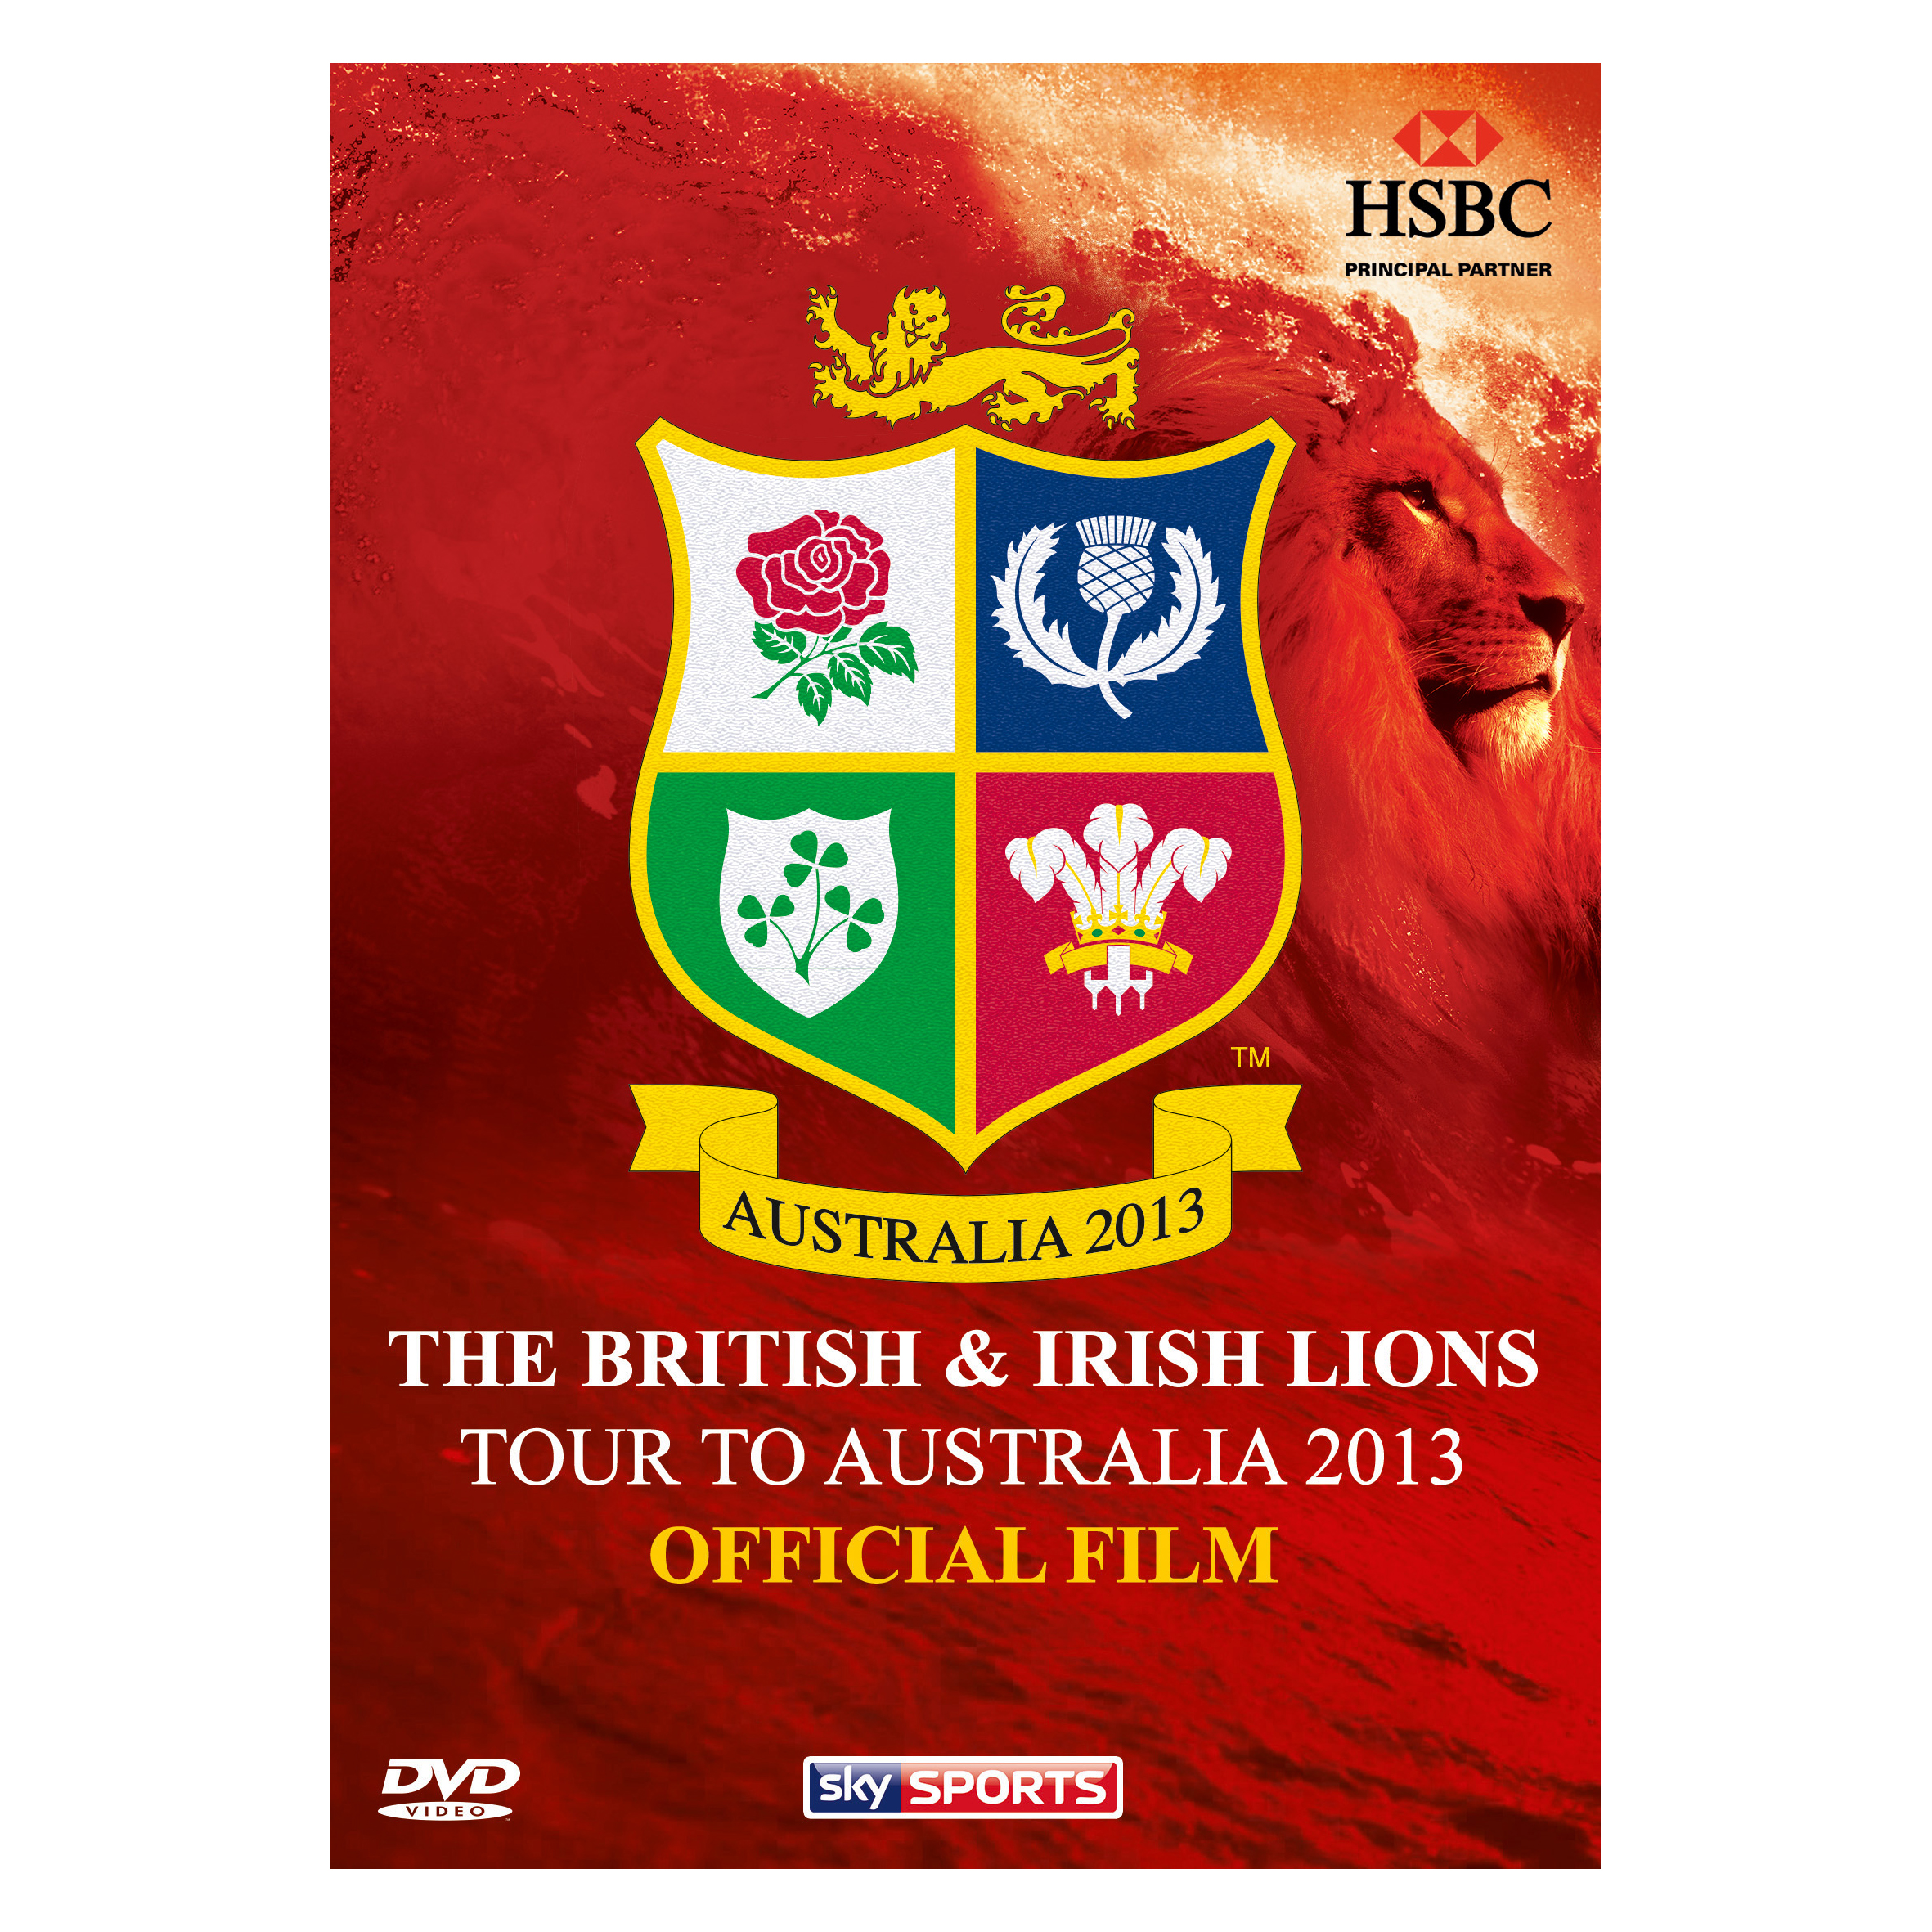 British & Irish Lions Tour to Australia 2013 Official Film - DVD